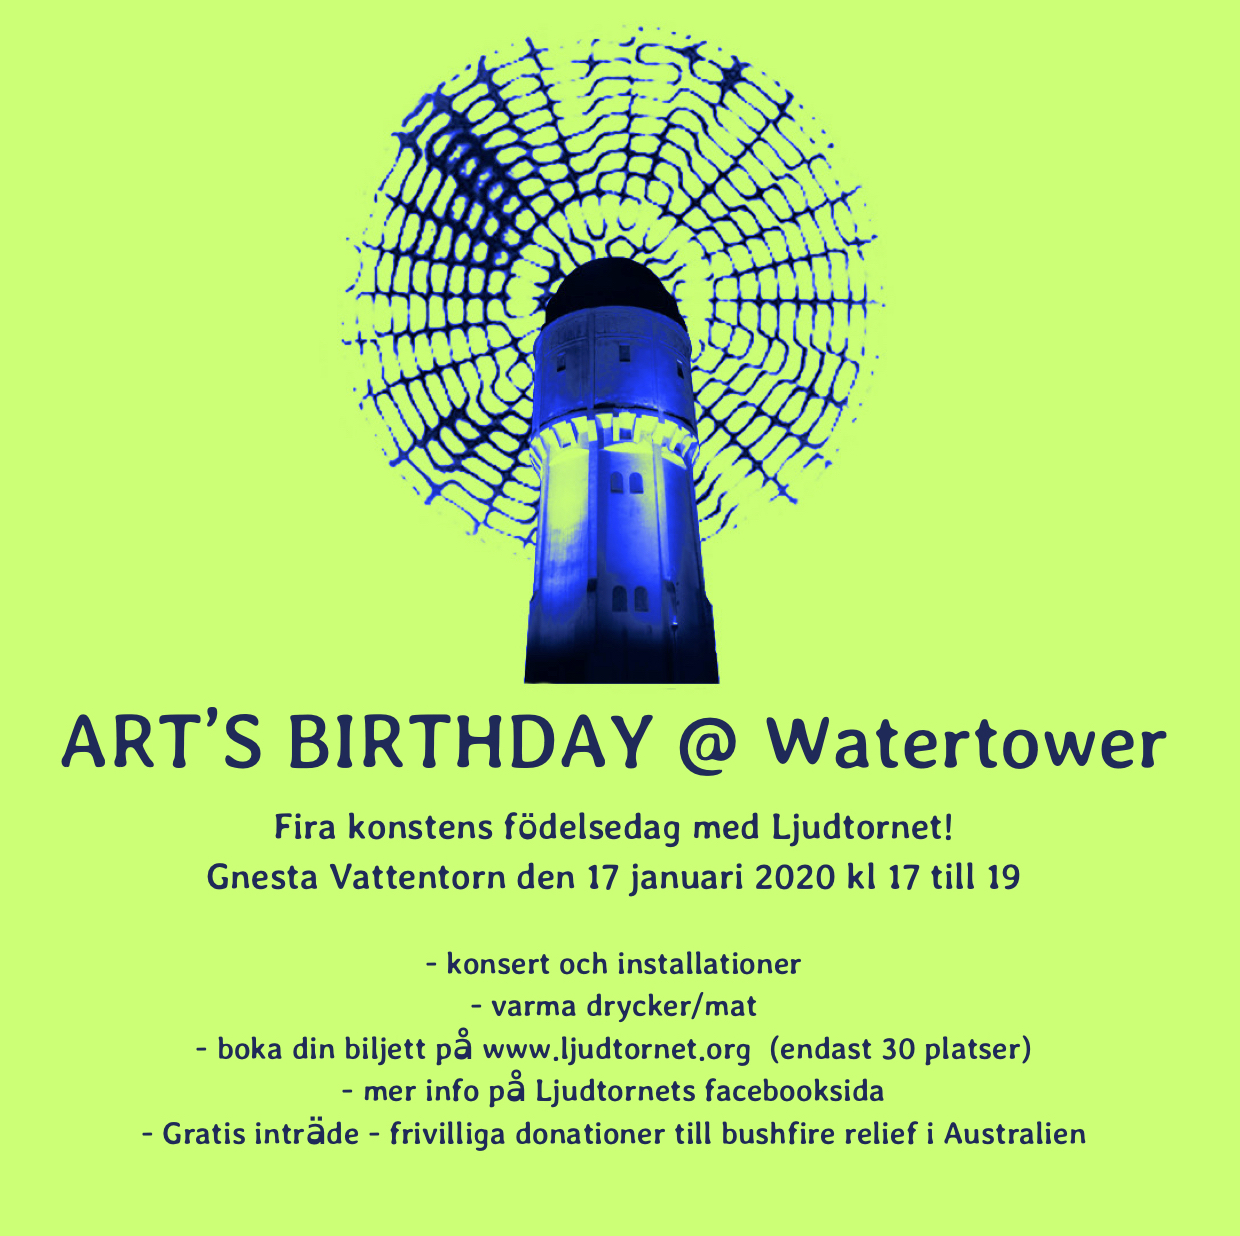 arts birthday @ watertower